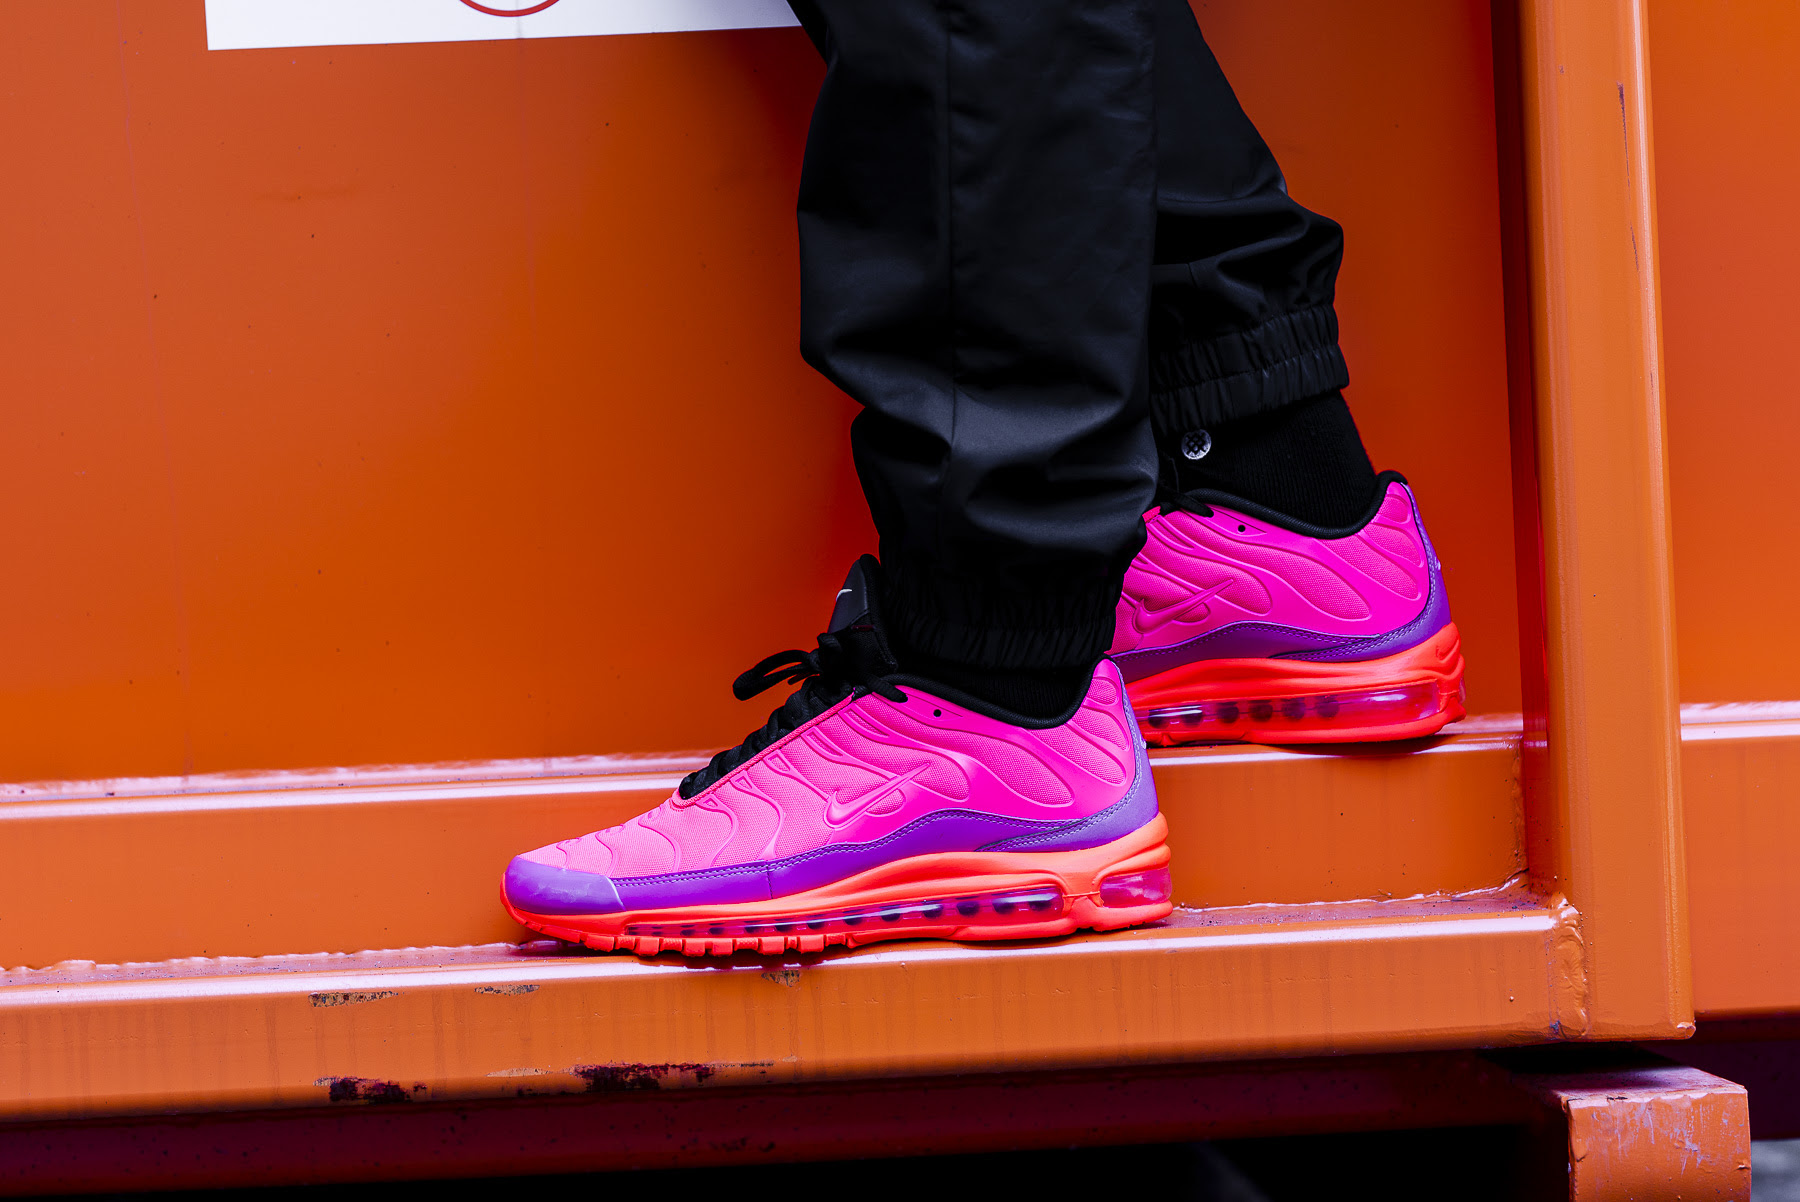 6b8530057b8 Nike Air Max 97 Plus Racer Pink  On-Foot Shots by OVERKILL - The ...